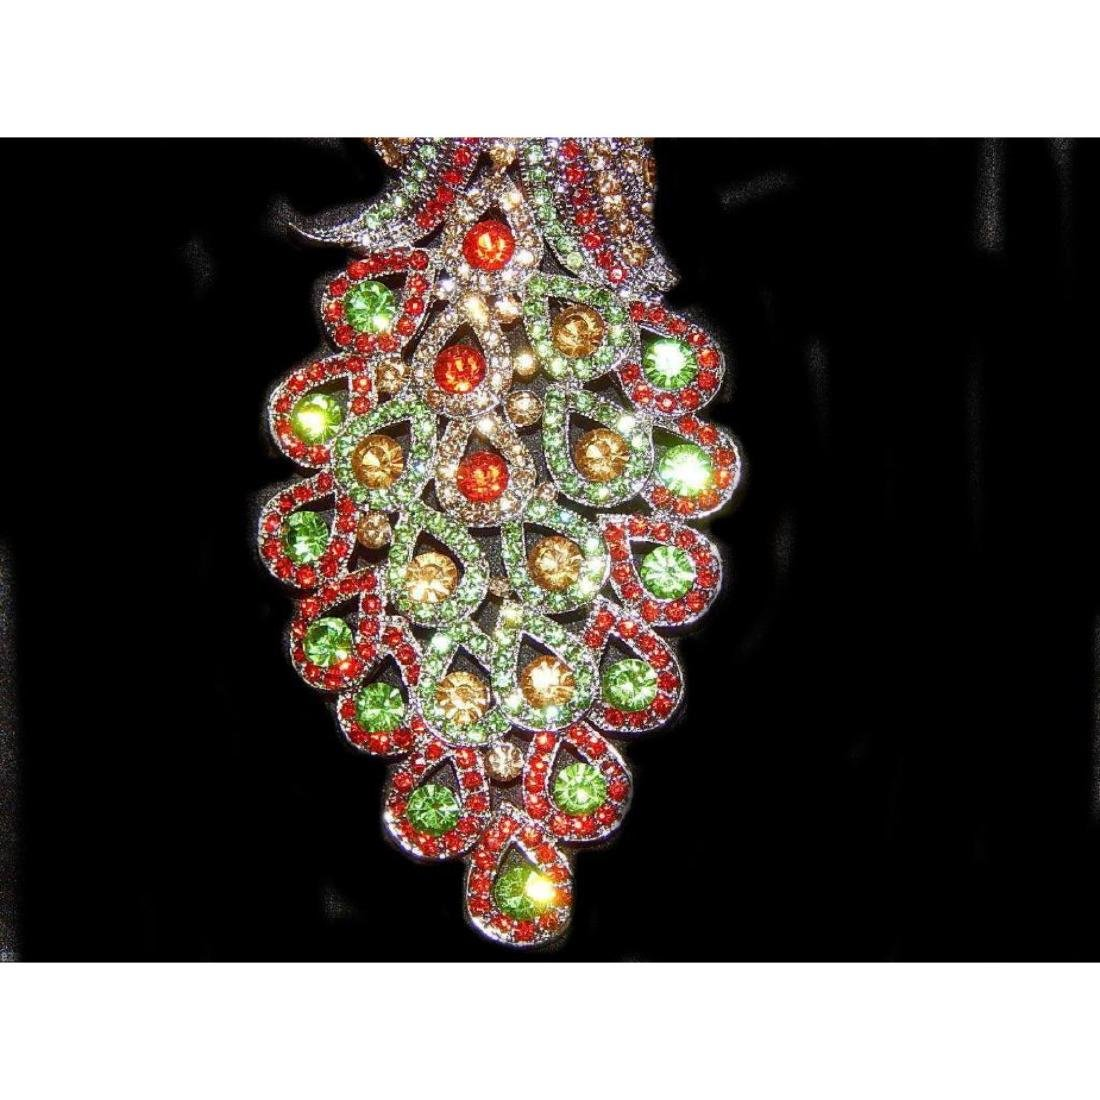 "5.3"" Peacock Multicolor Rhinestone Crystal Brooch /pin - 3"